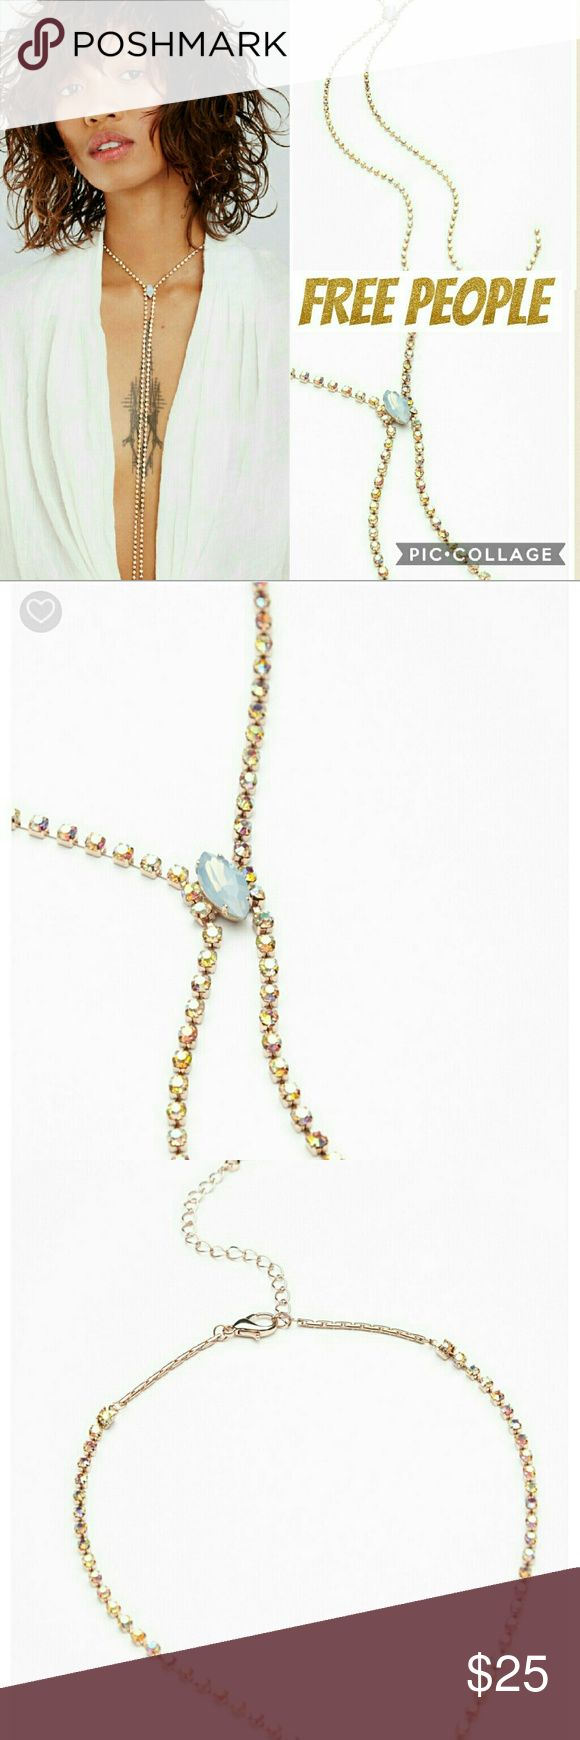 17 best images about necklace shapes on pinterest